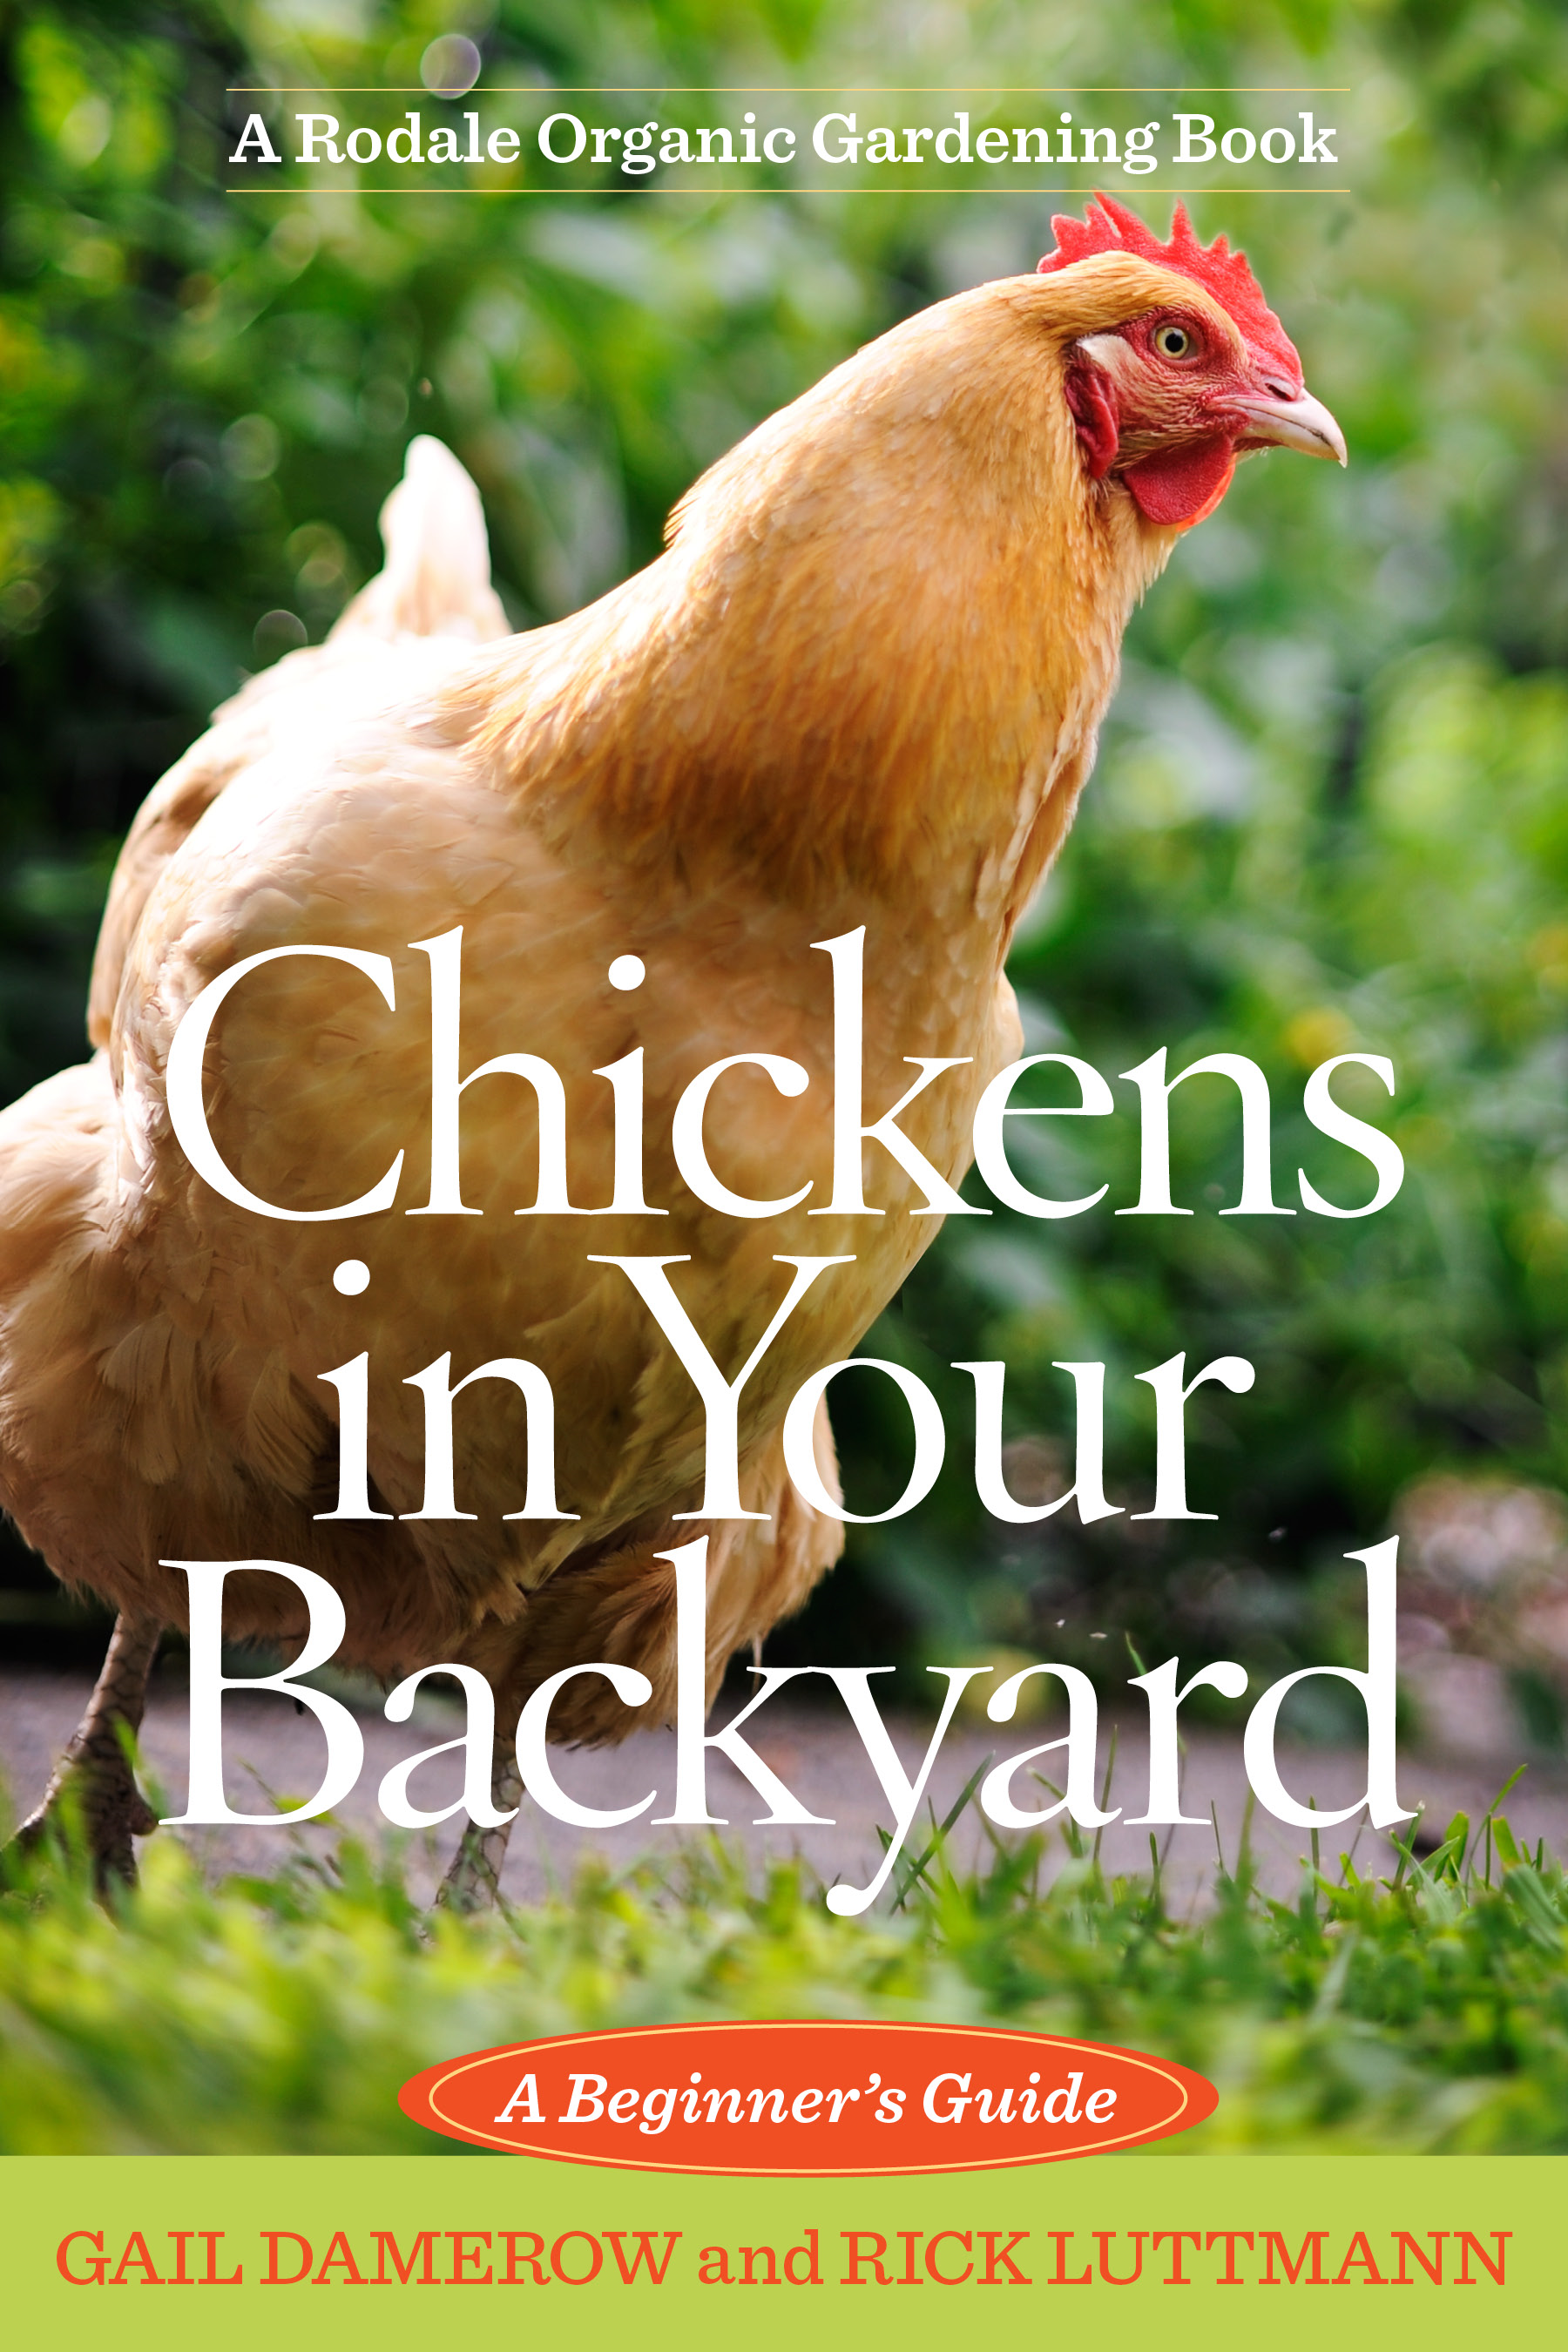 Chickens In Your Backyard By: Gail Damerow,Rick Luttmann